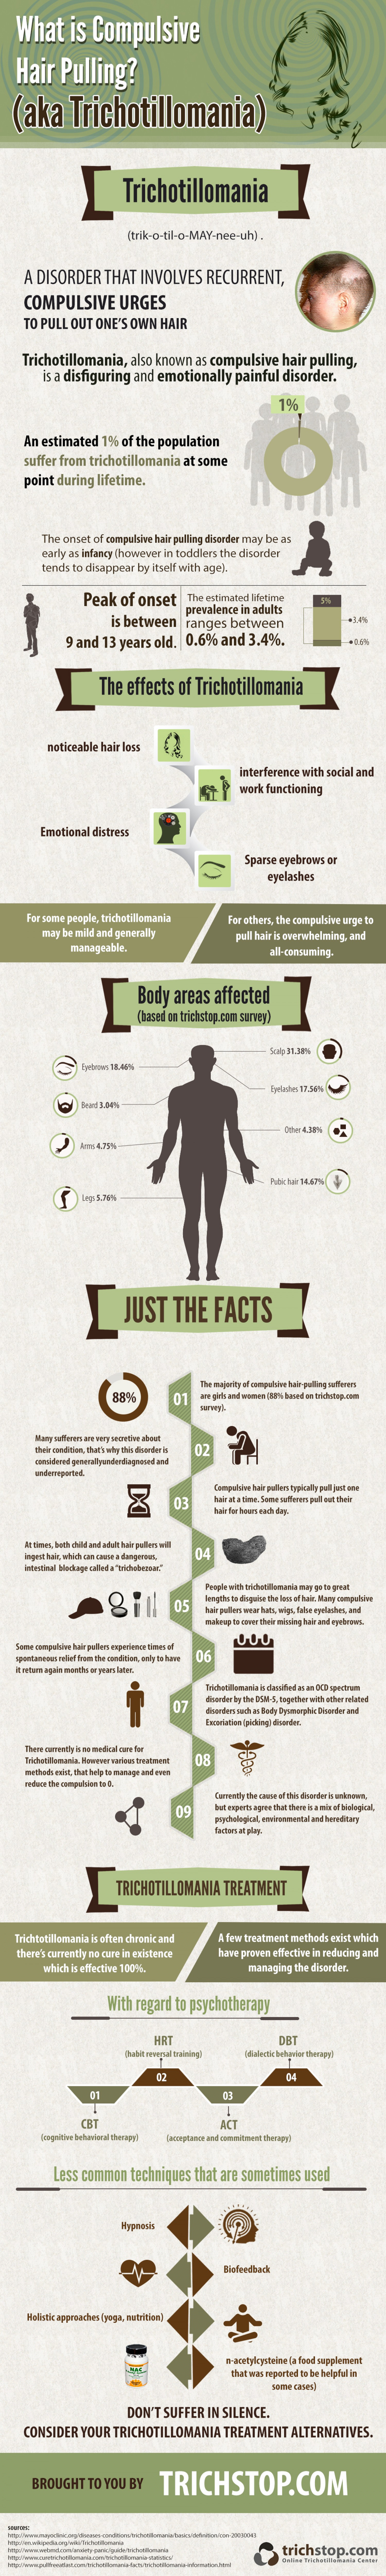 What is Compulsive Hair Pulling? Aka Trichotillomania Infographic